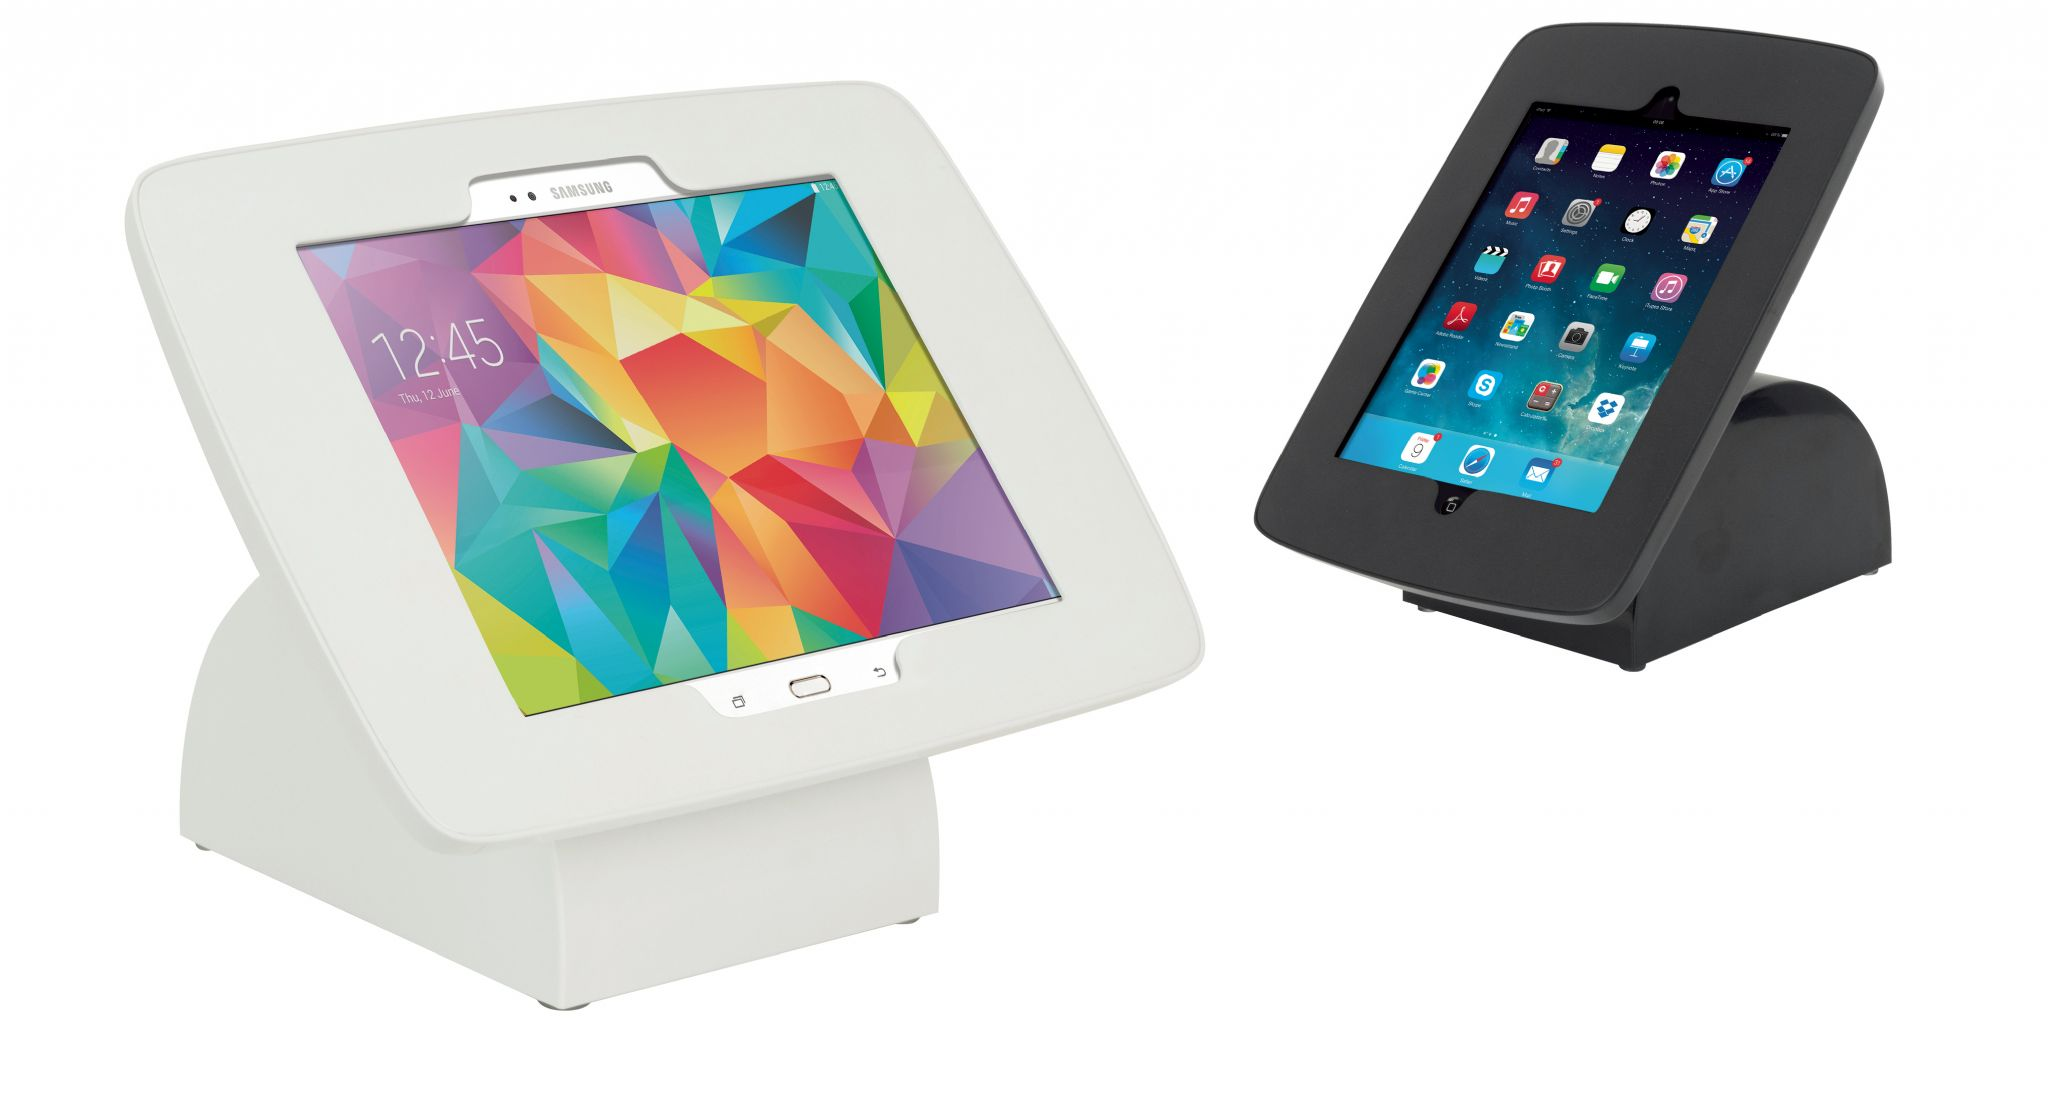 Fabric Exhibition Stand List : Tablet holder ipad or galaxy tab for counter desktop use